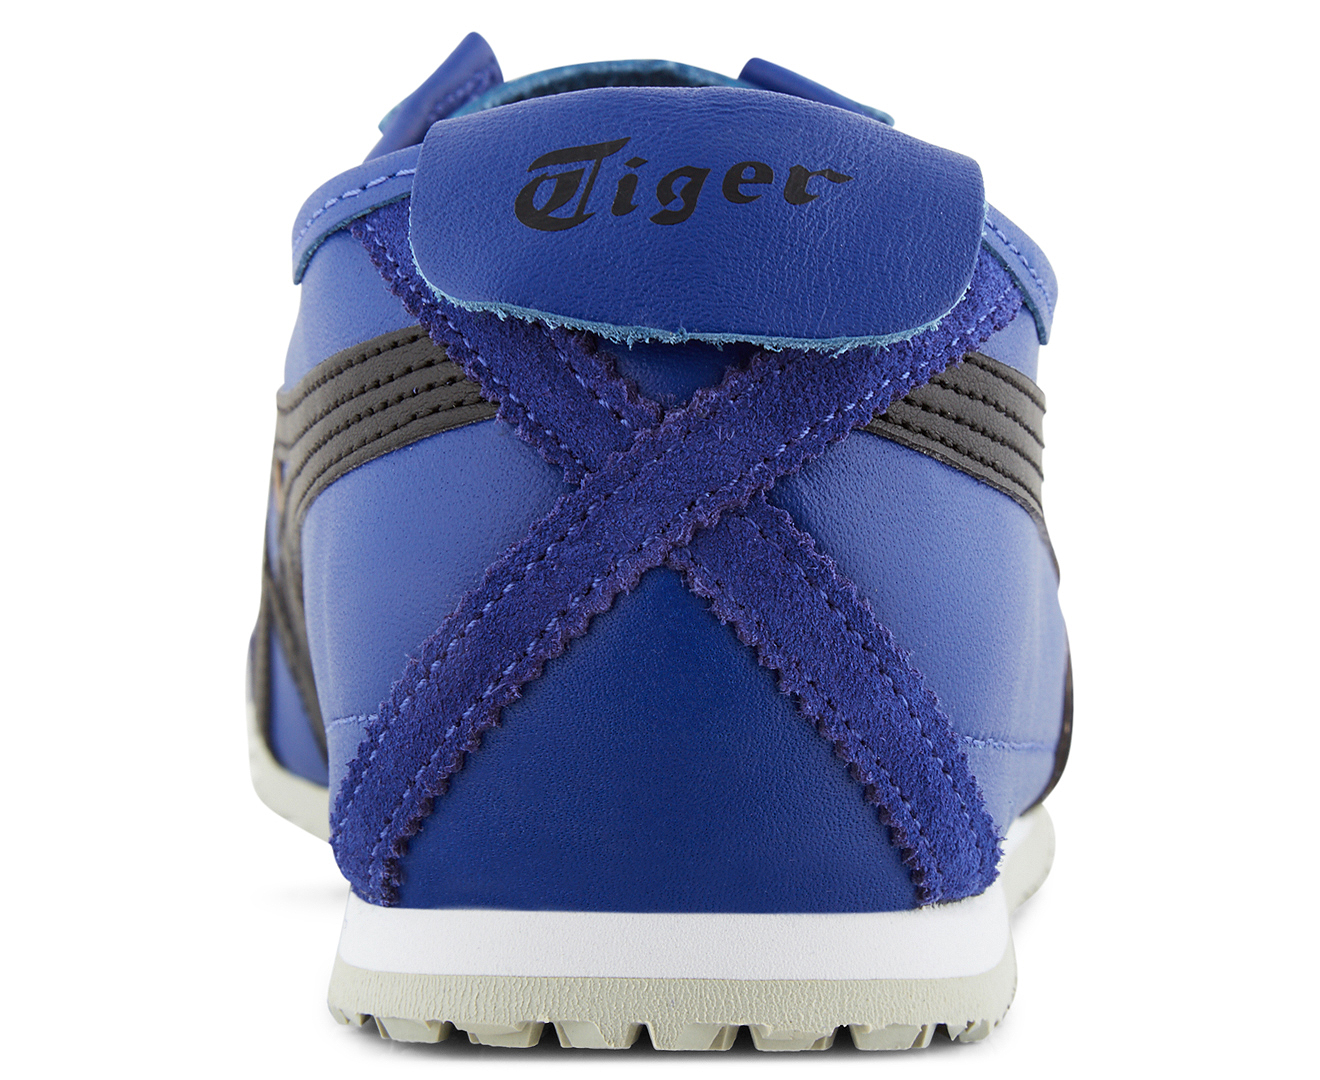 Onitsuka Tiger Men's Mexico 66 Shoe - Asics Blue/Black ...